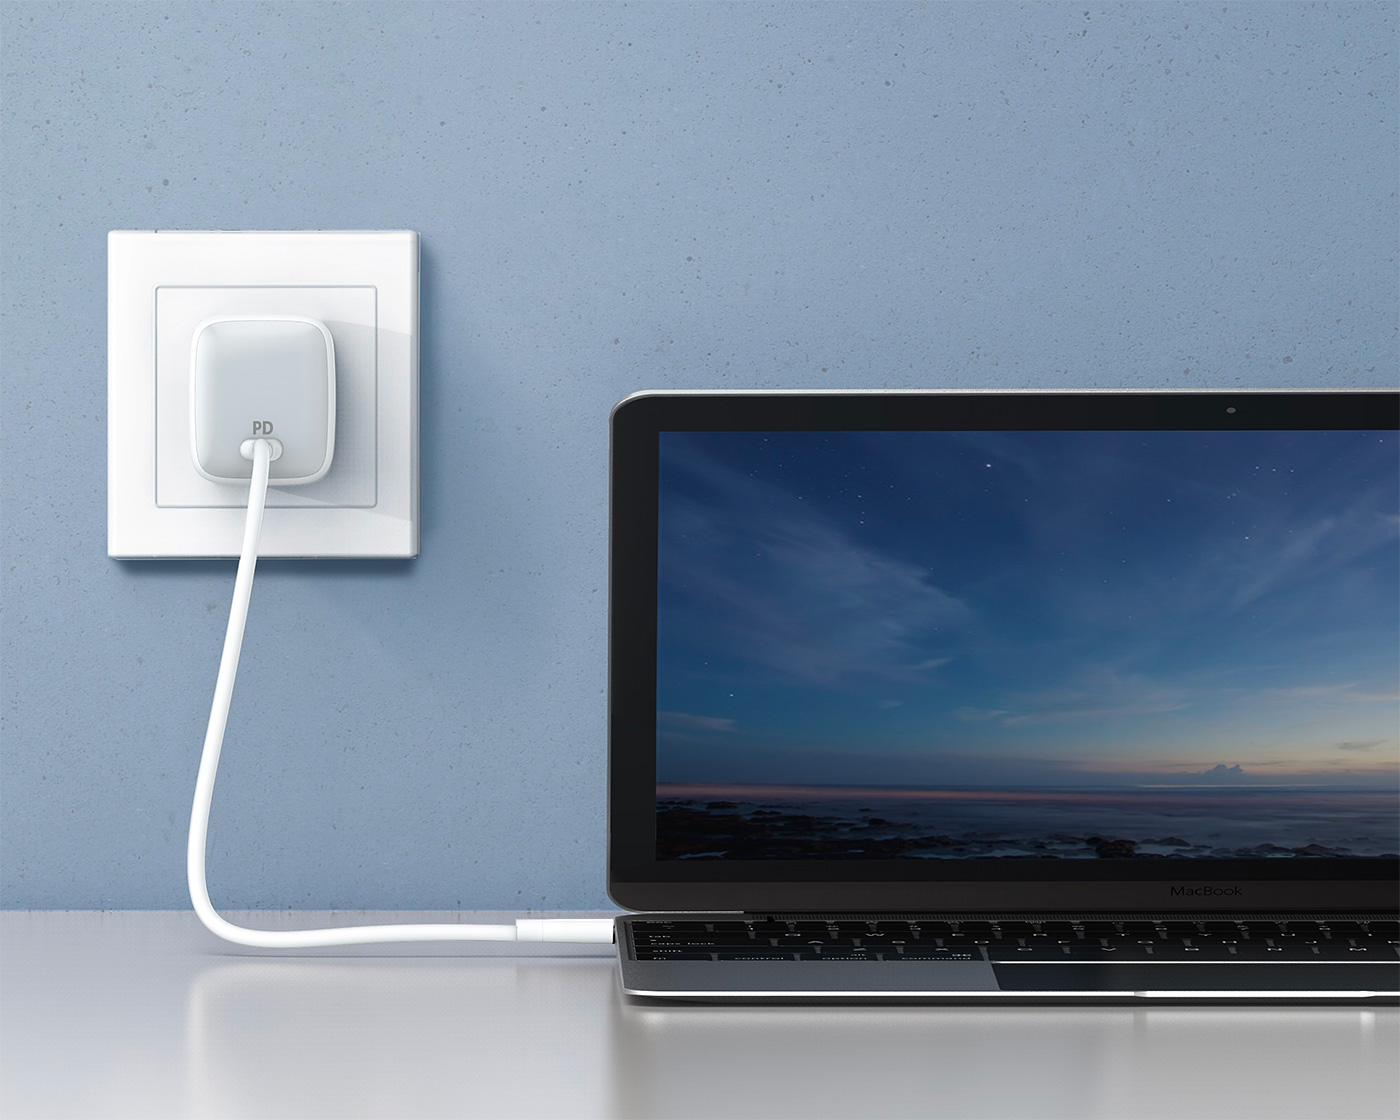 Anker is About To Release the World's Smallest USB-C Wall Charger at werd.com